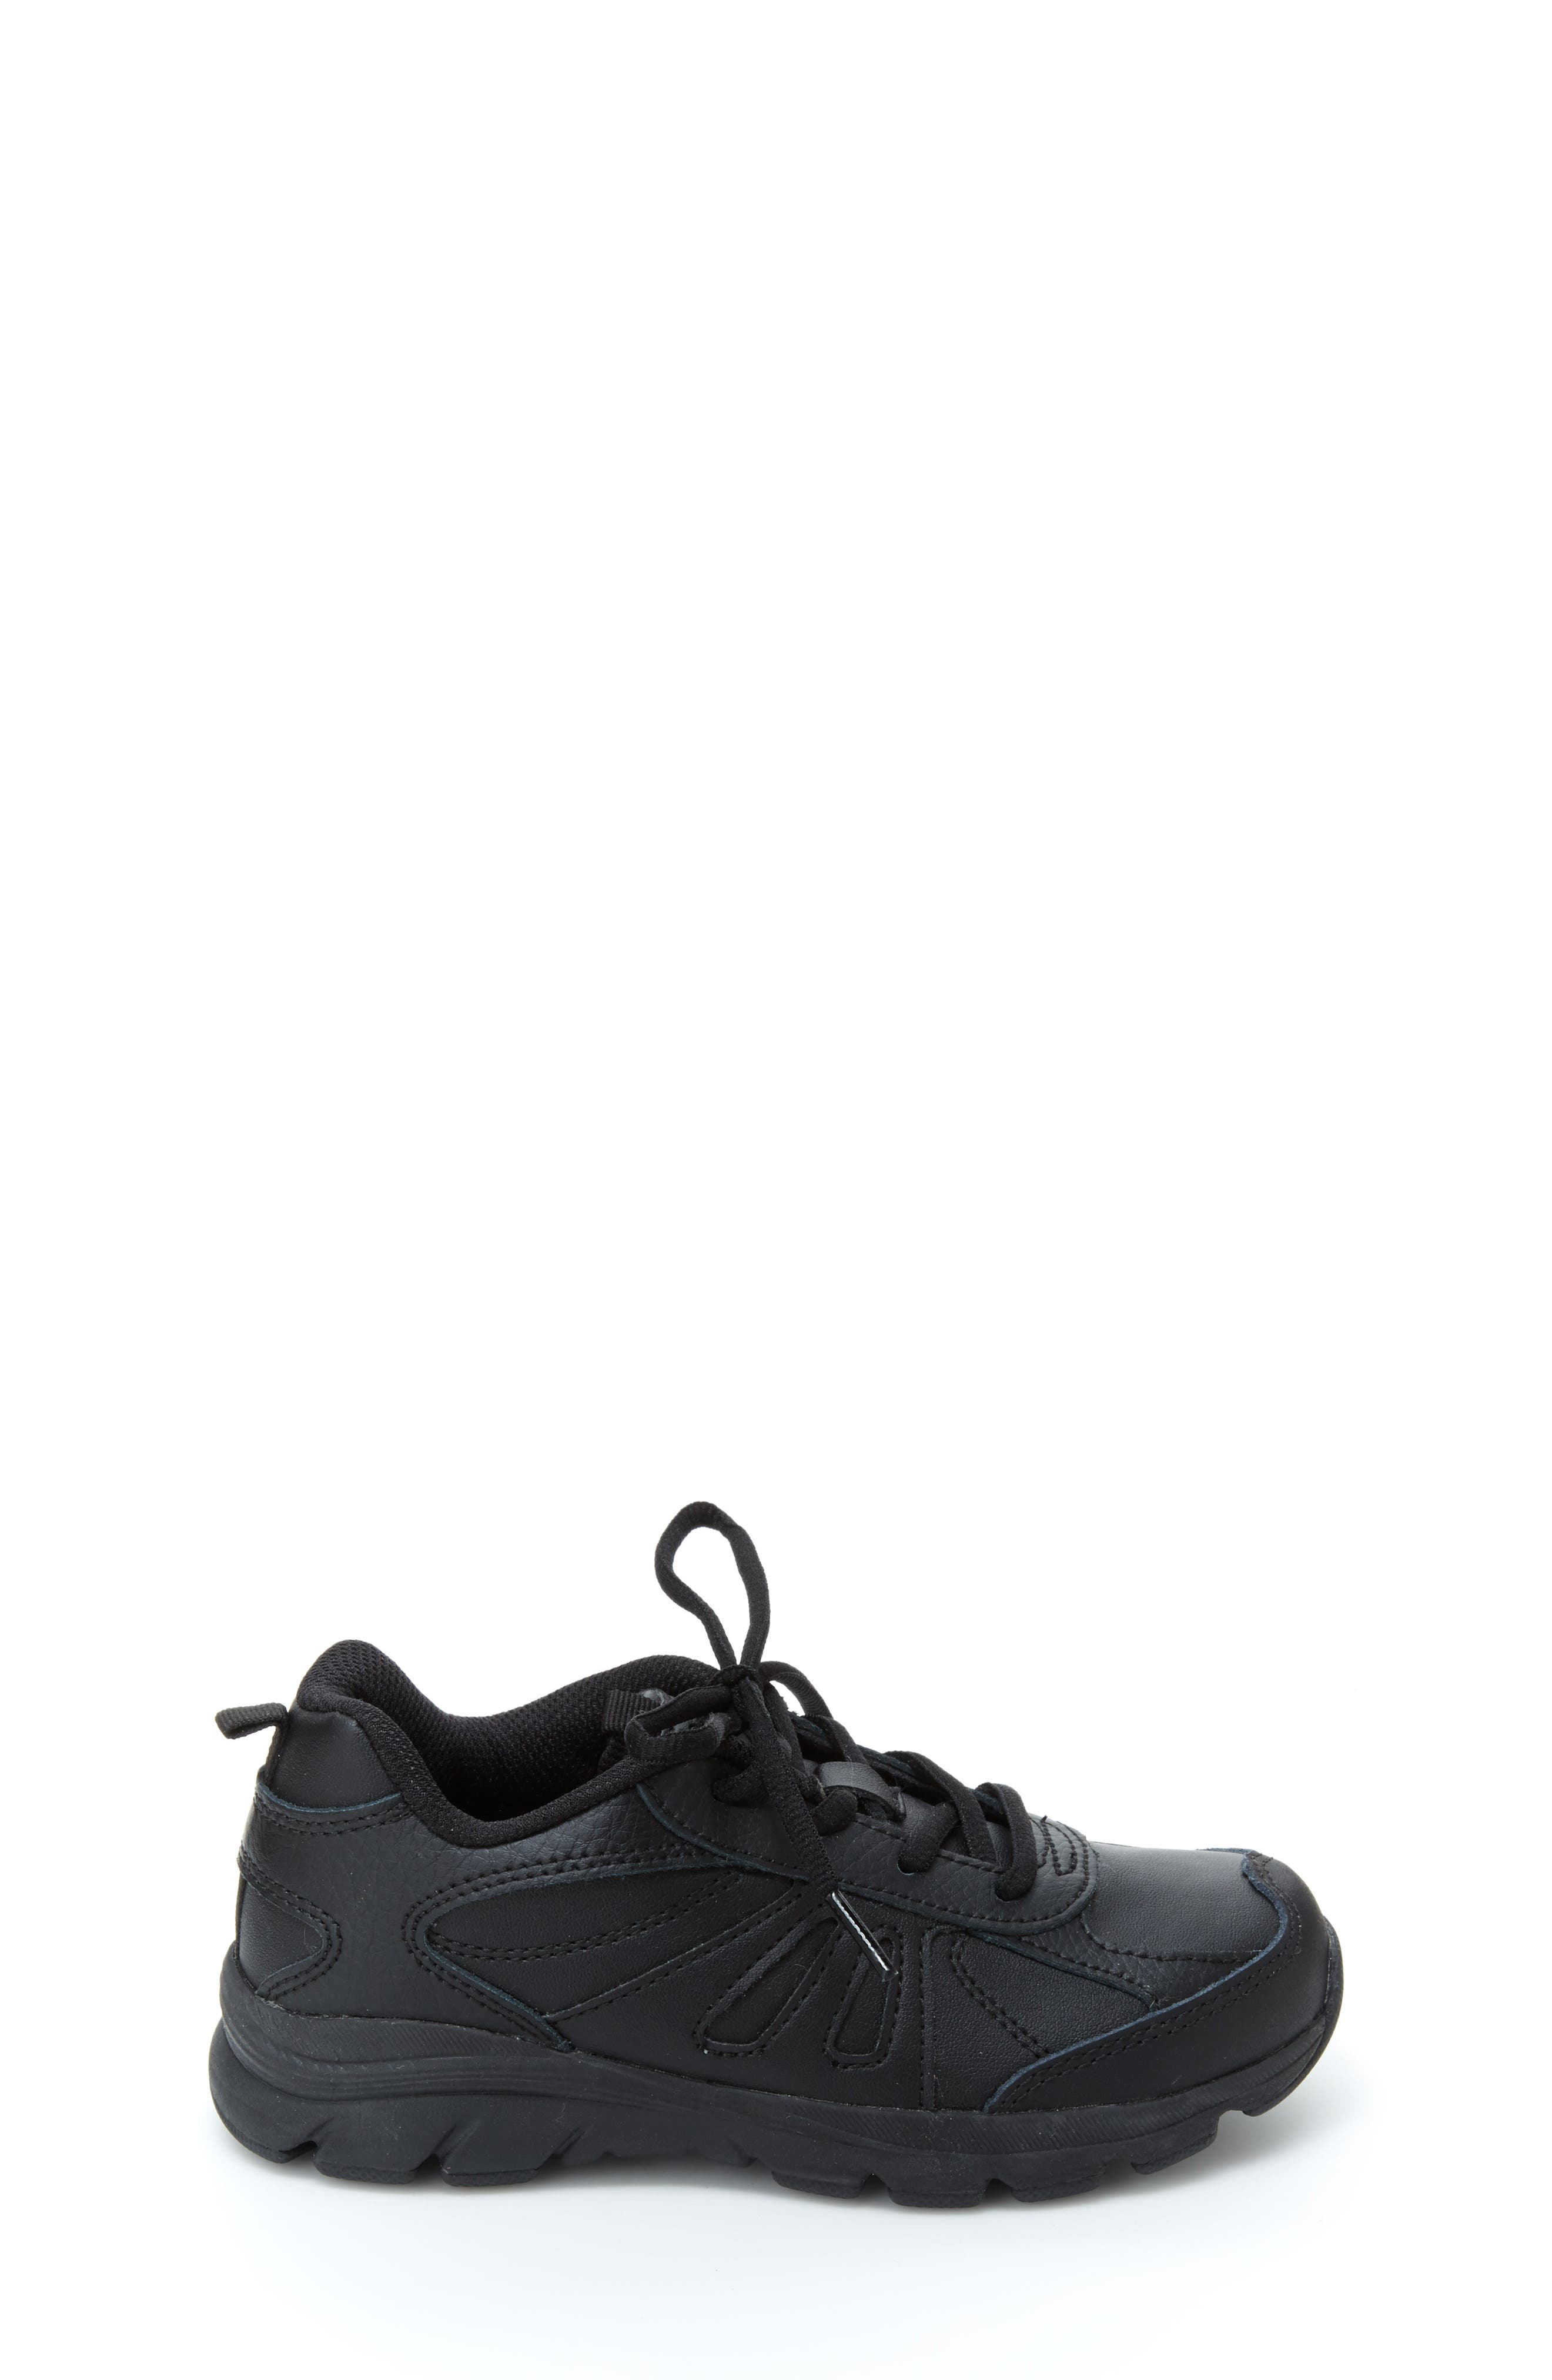 Cooper 2.0 Sneaker,                             Alternate thumbnail 2, color,                             BLACK